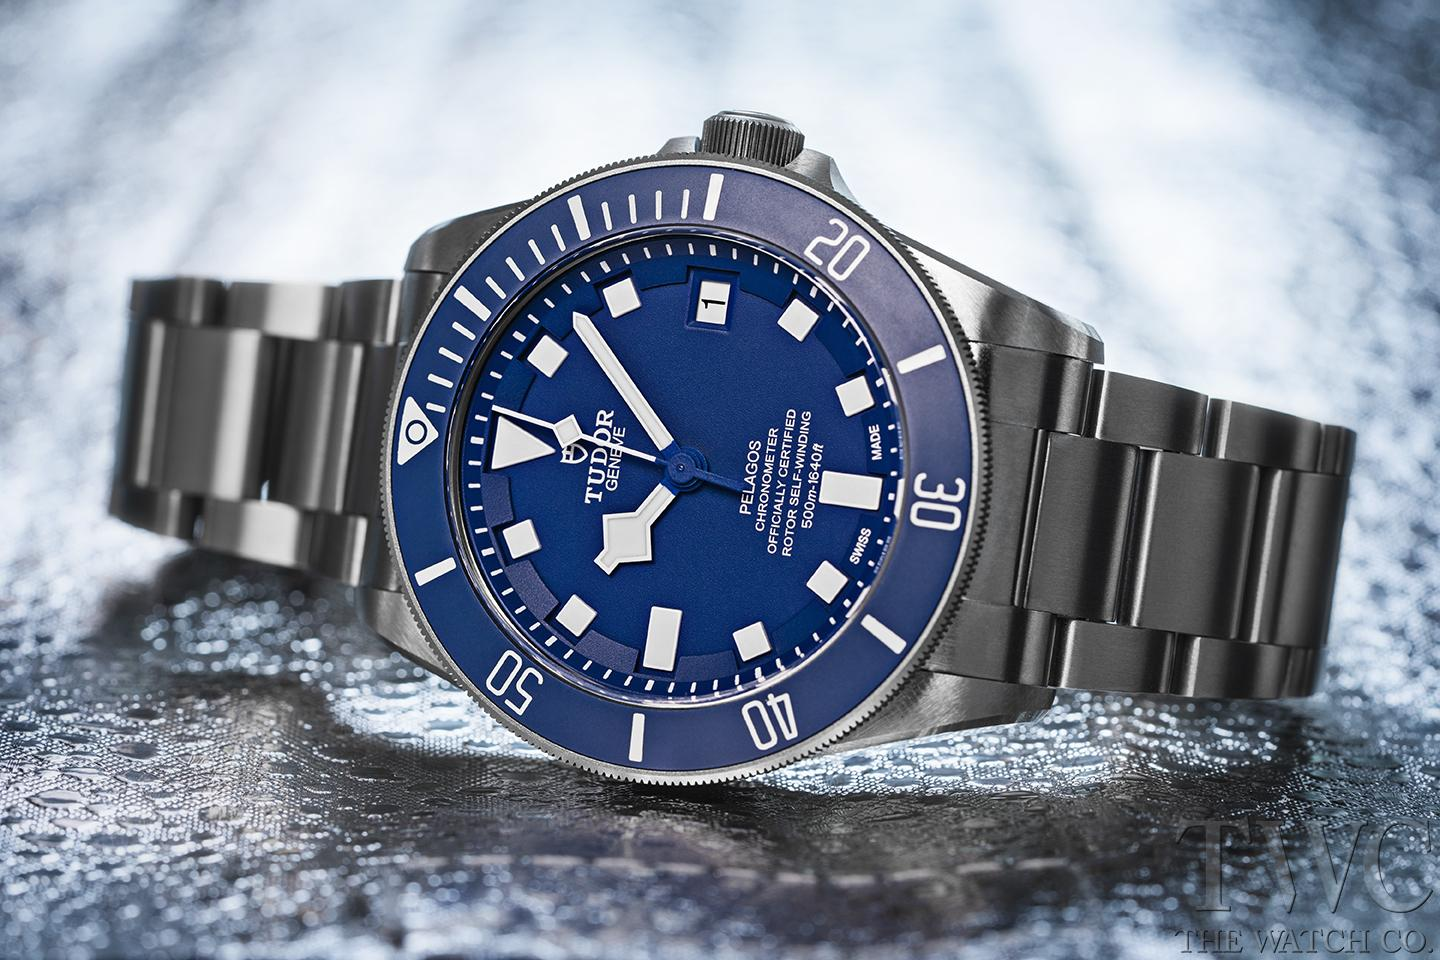 Watch to Match: Top Tudor's Collection of Elegant Timepieces to Check Out